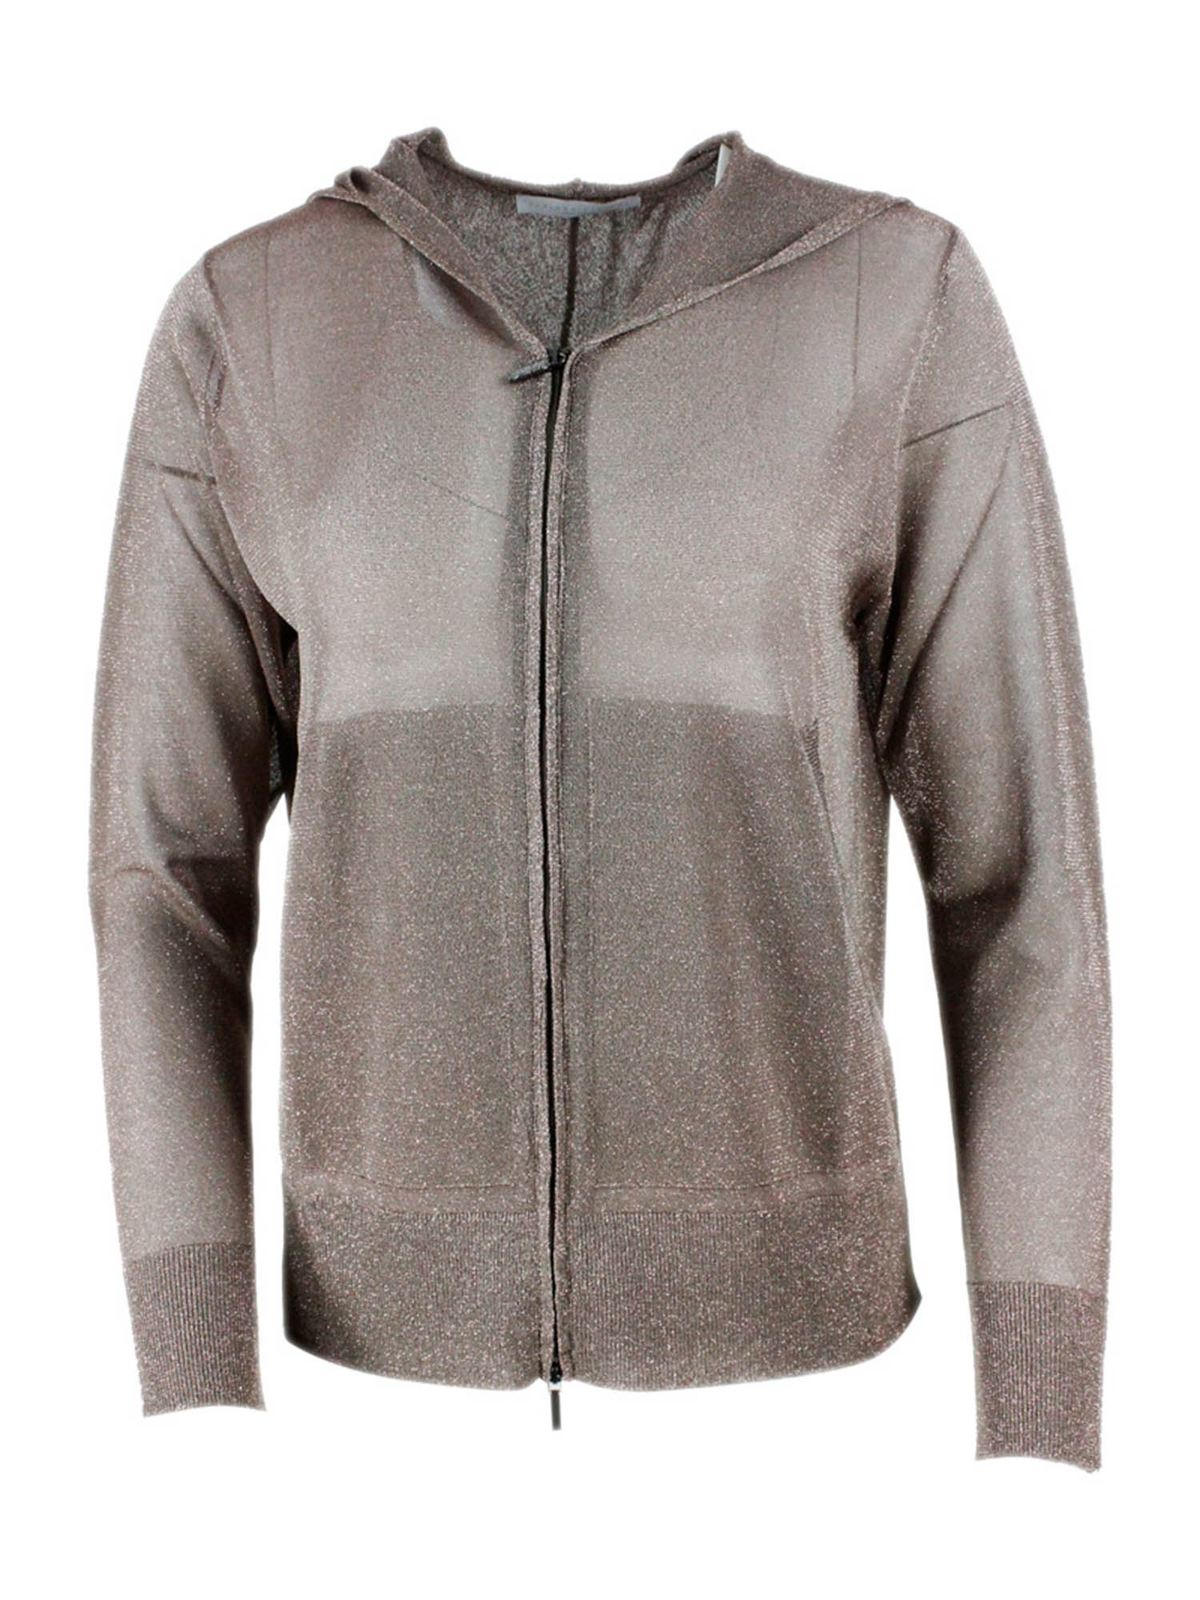 Fabiana Filippi LUREX ZIPPED CARDIGAN IN TAUPE COLOR